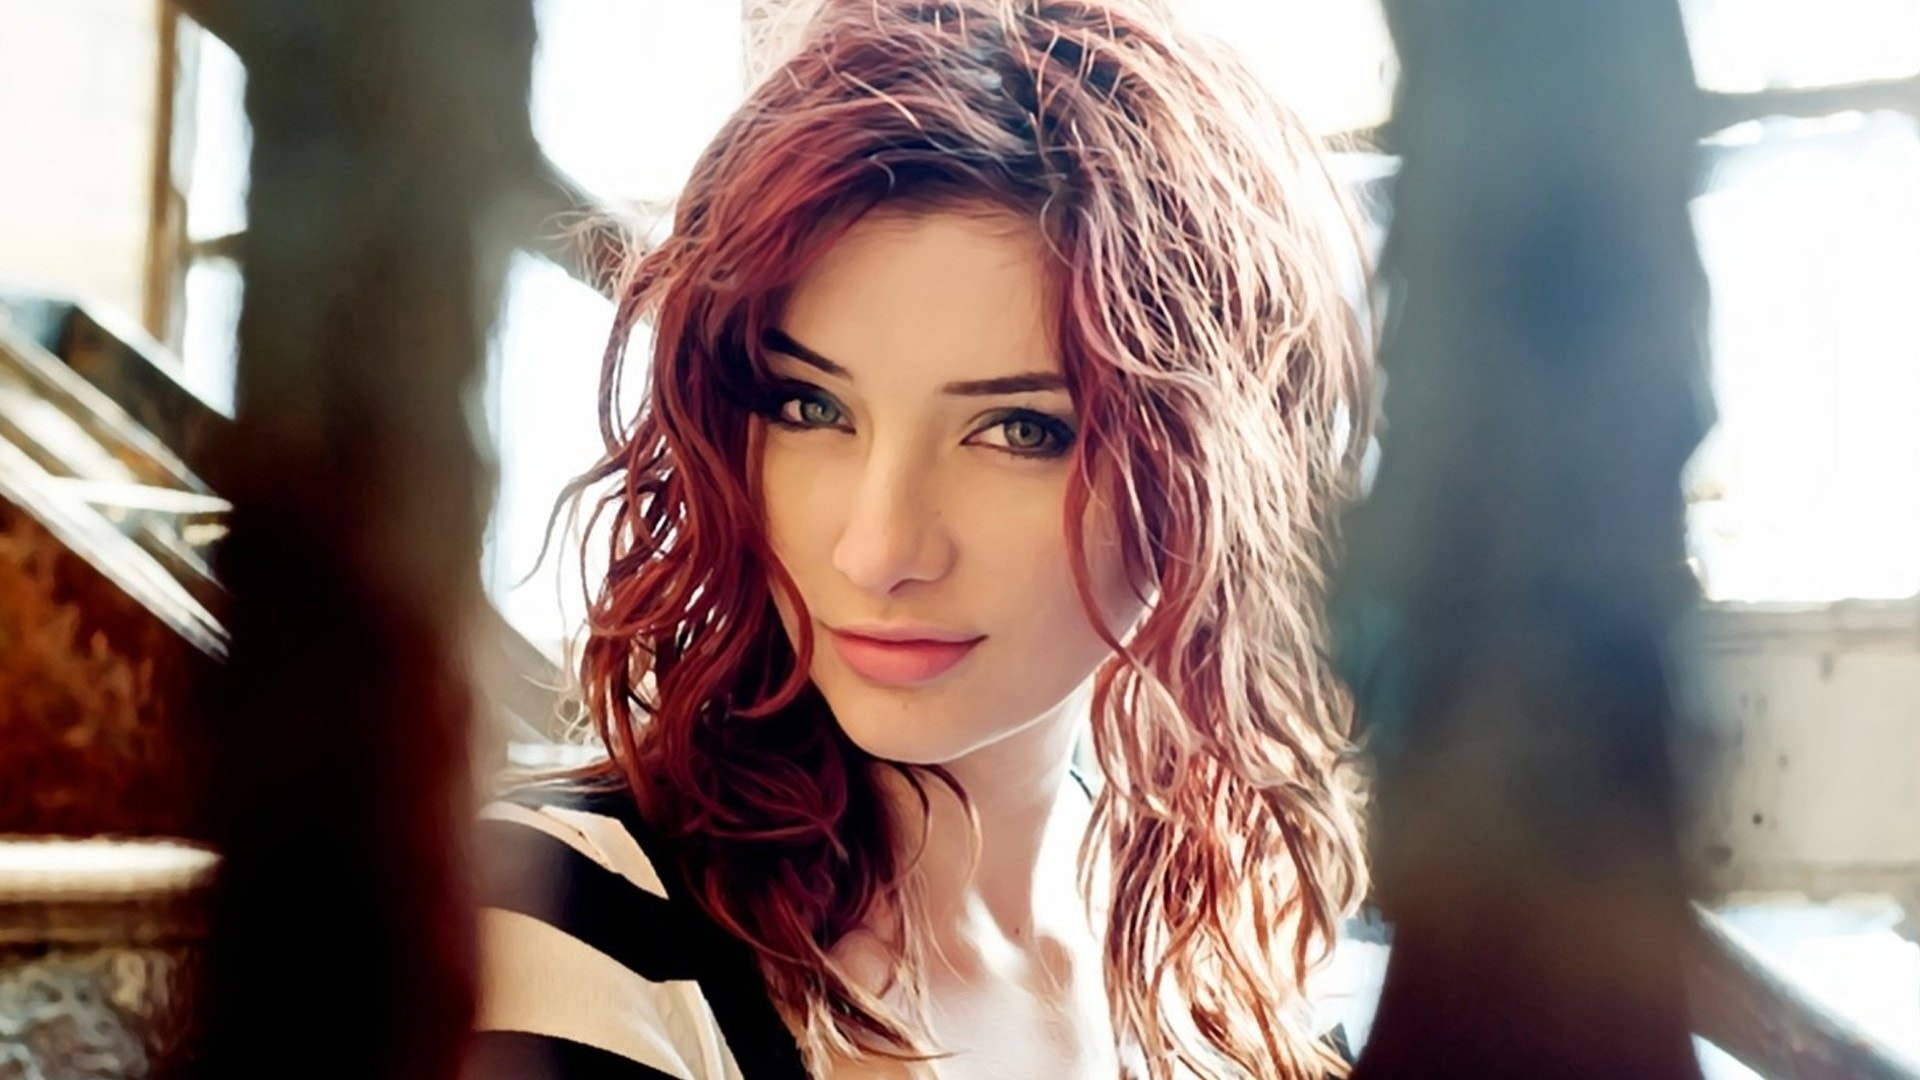 Susan Coffey widescreen wallpapers